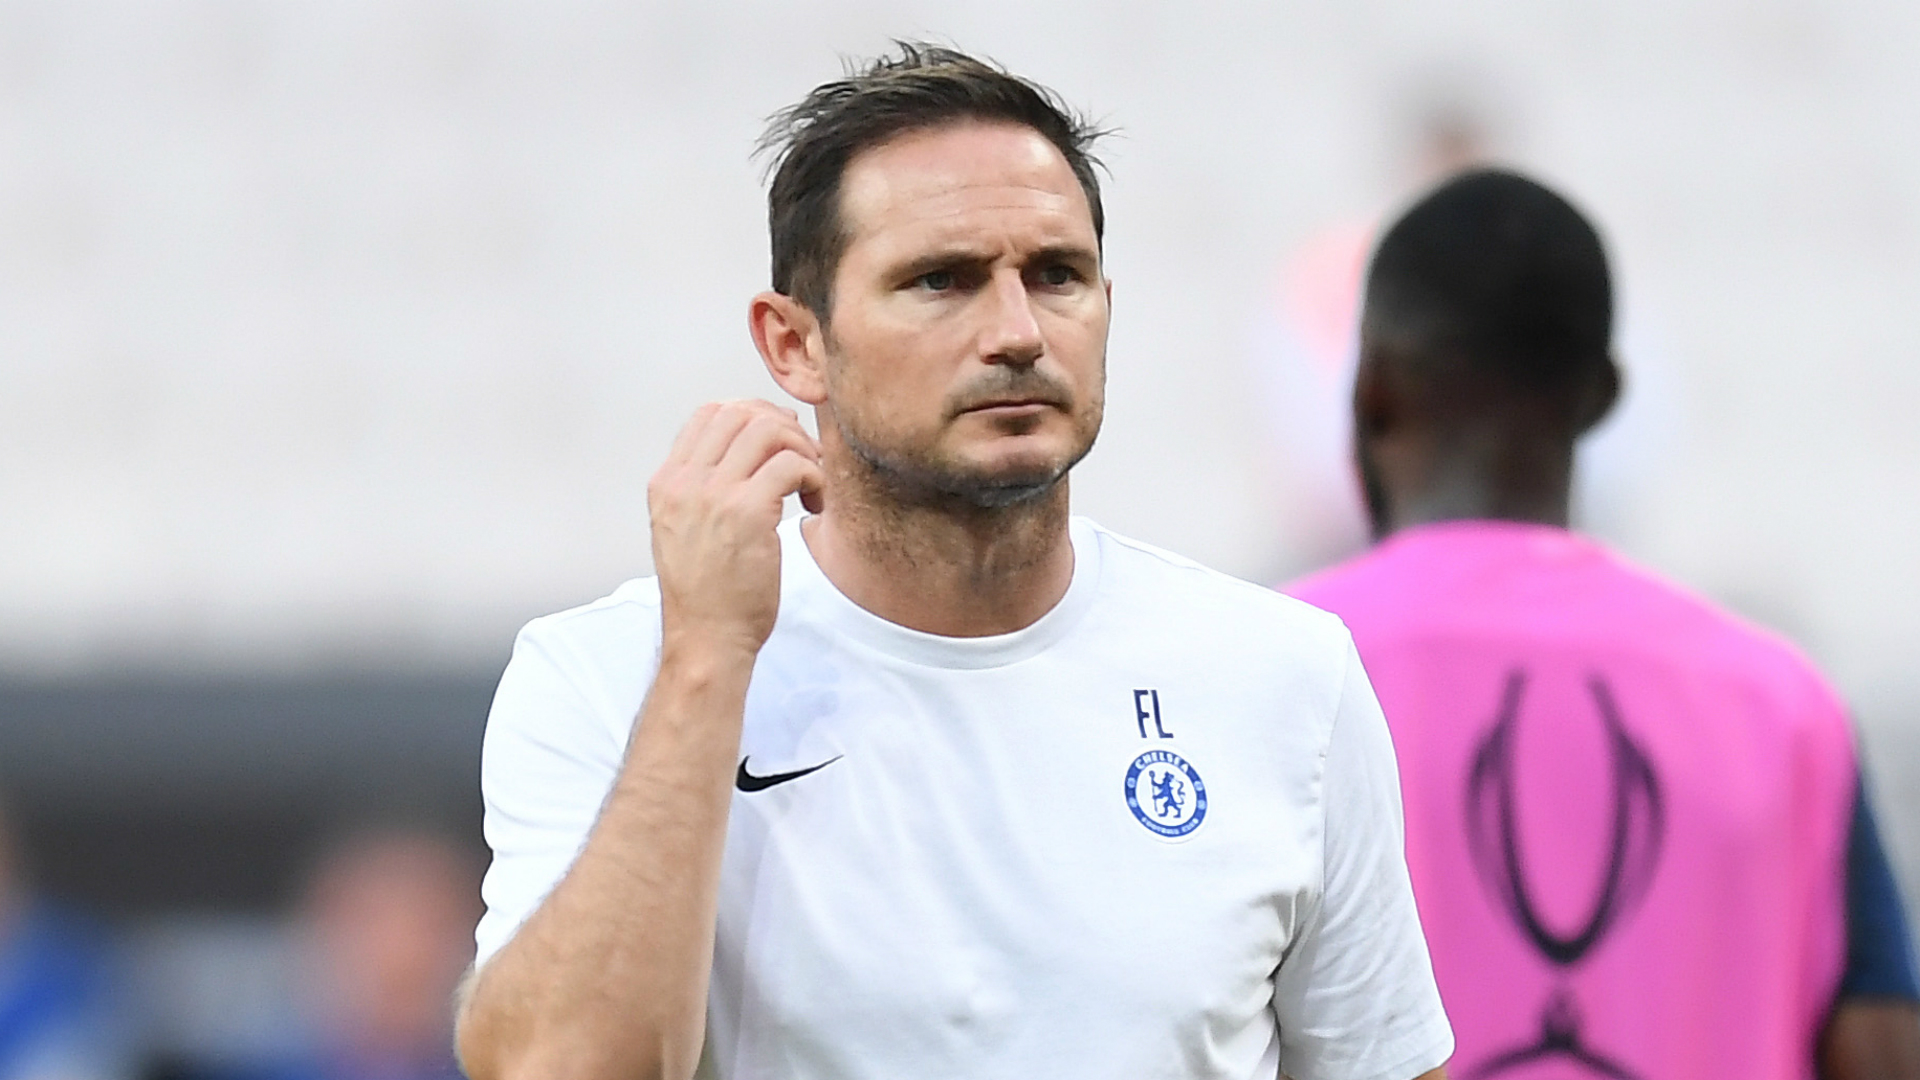 Jose Mourinho criticised Frank Lampard's team selection in his first league game in charge of Chelsea, with the Blues boss not surprised.